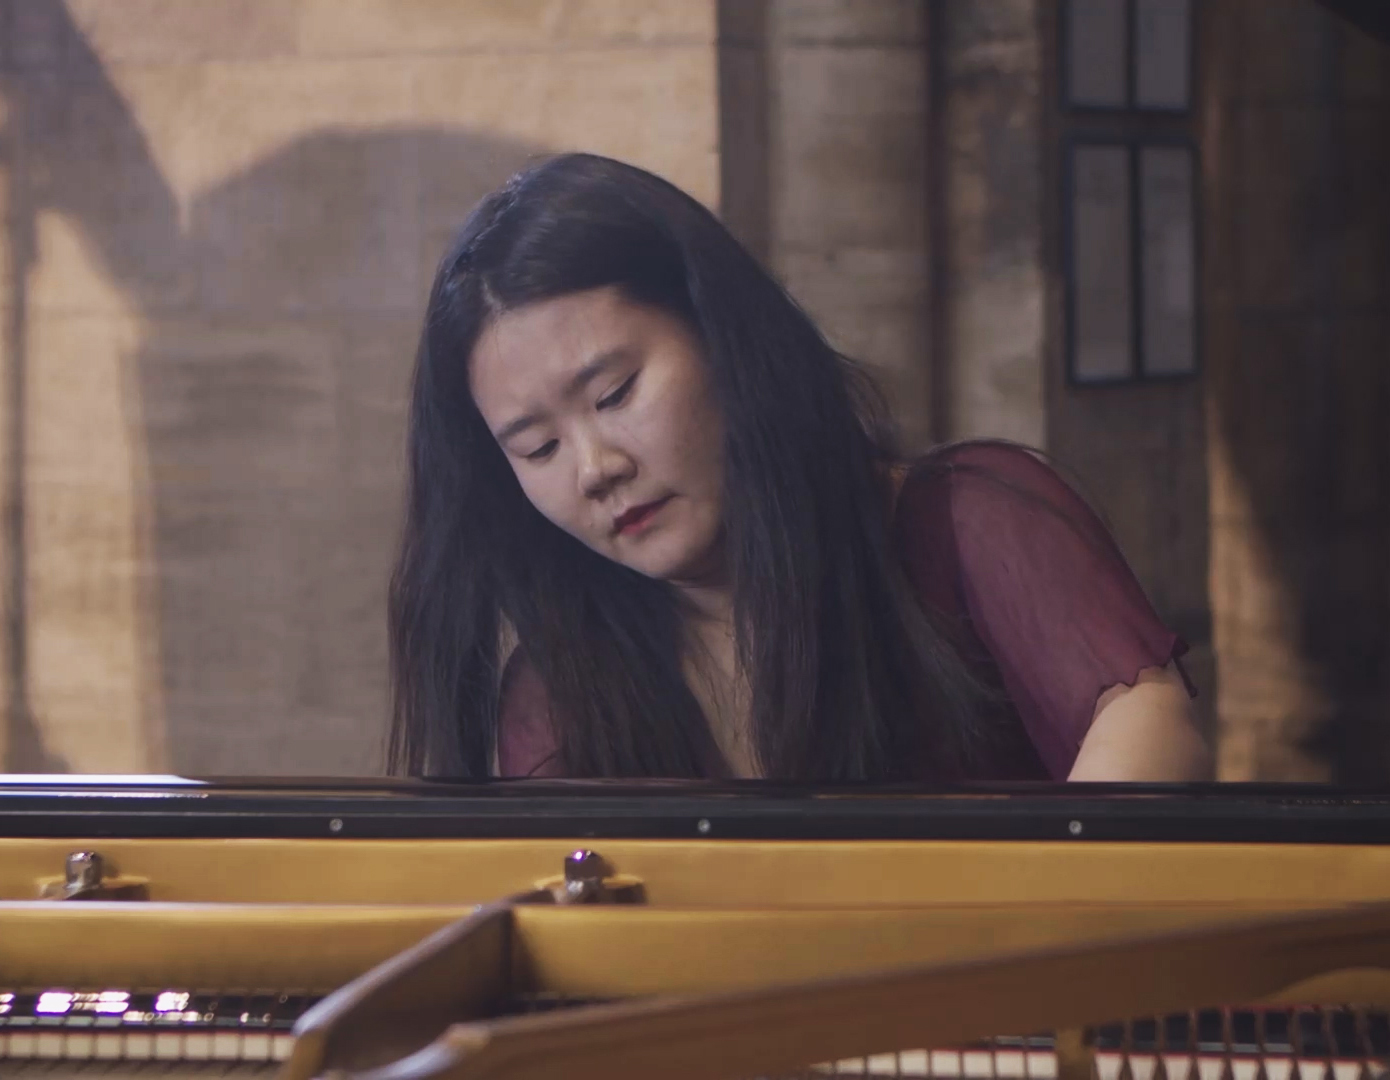 Watch Ke Ma Celebrates The Chinese Spring Festival at Selby Abbey Premiere on YouTube